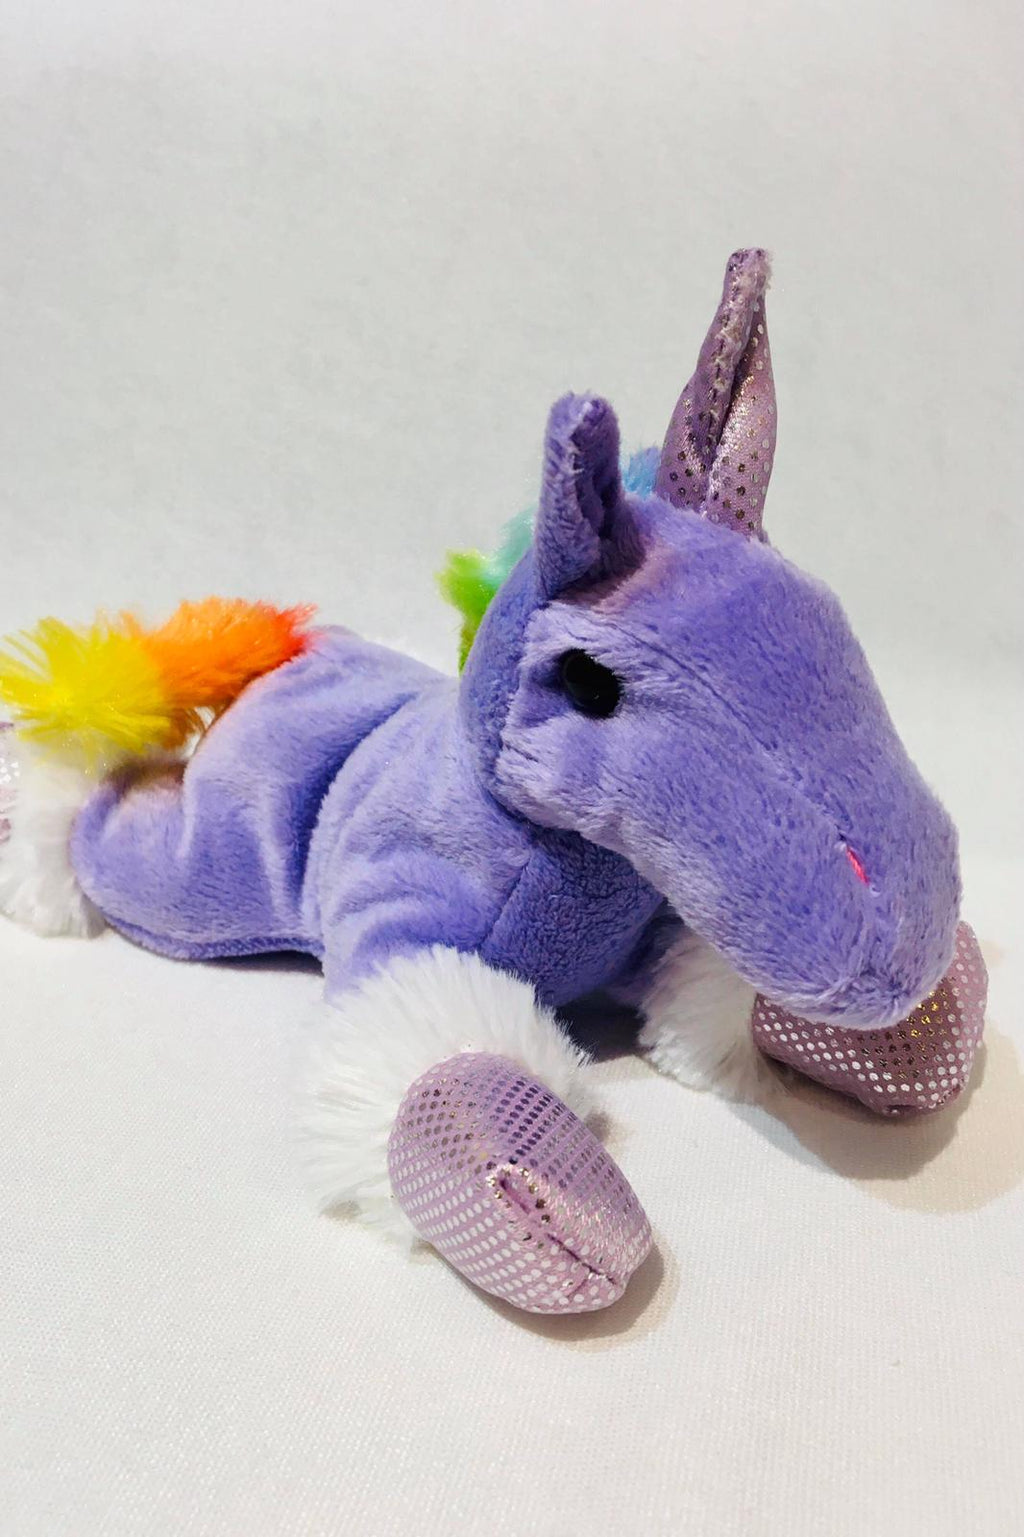 Soft and cuddly unicorn